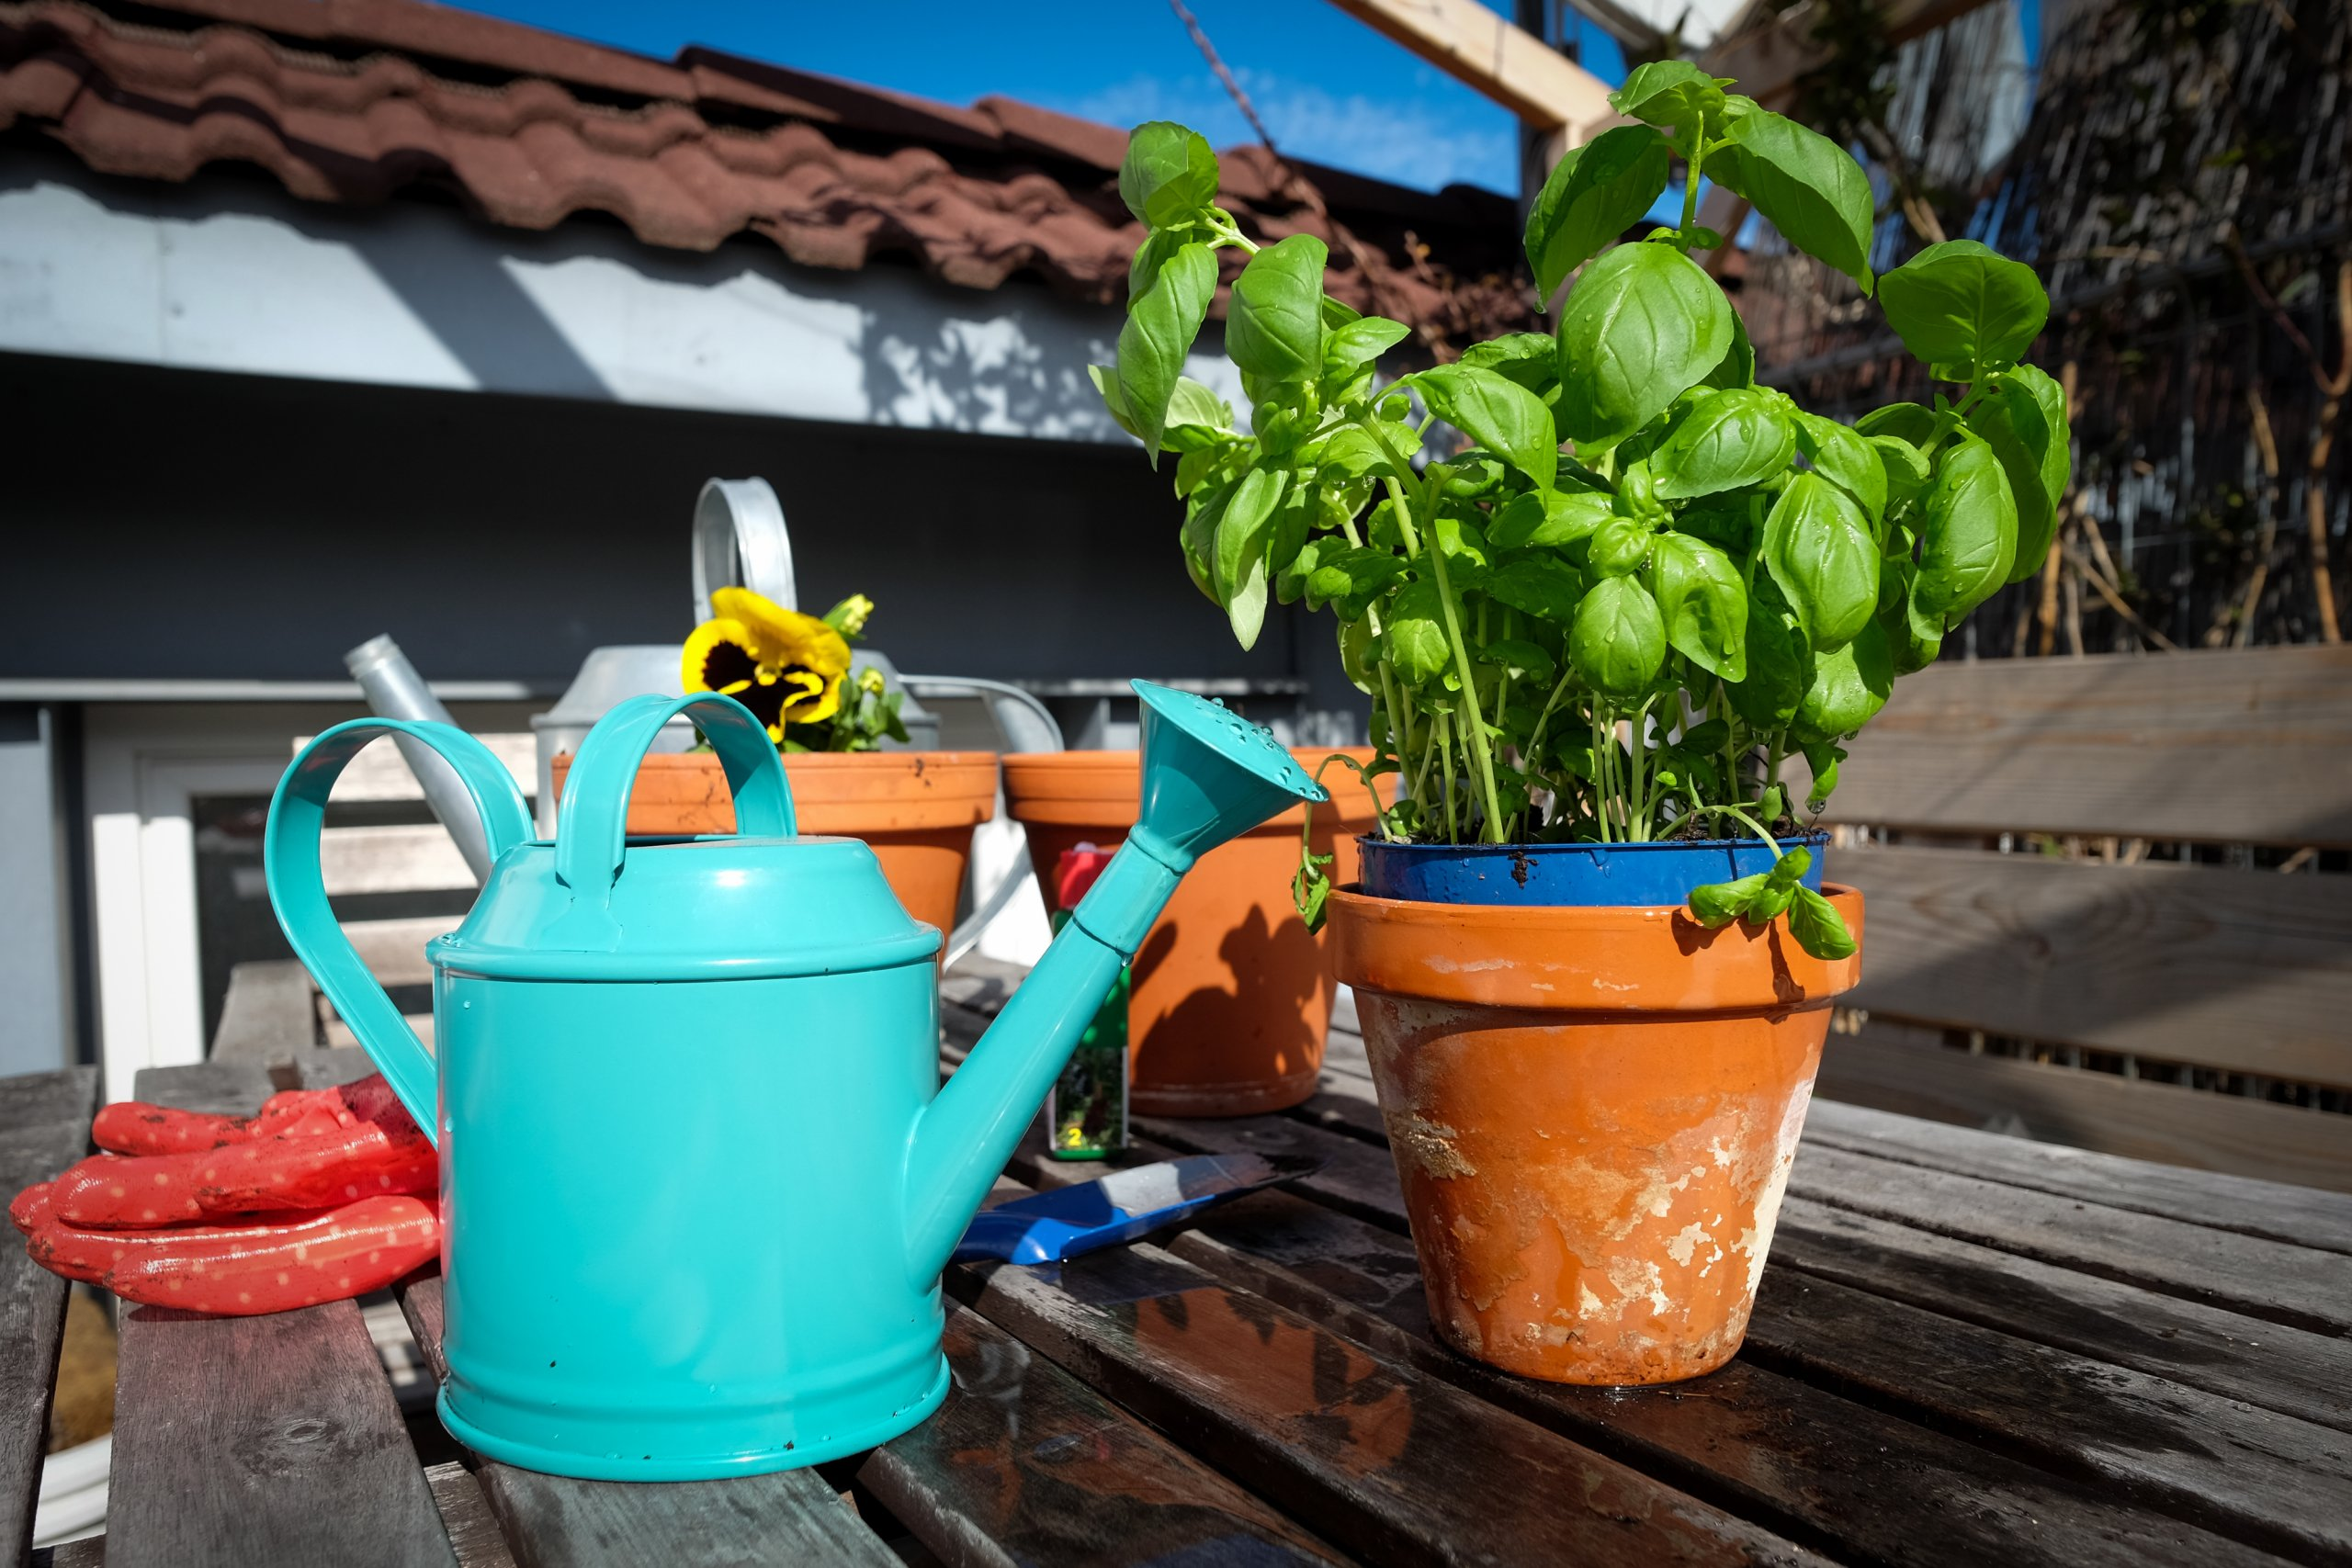 Photo of basil plants in terracotta pots and a watering can